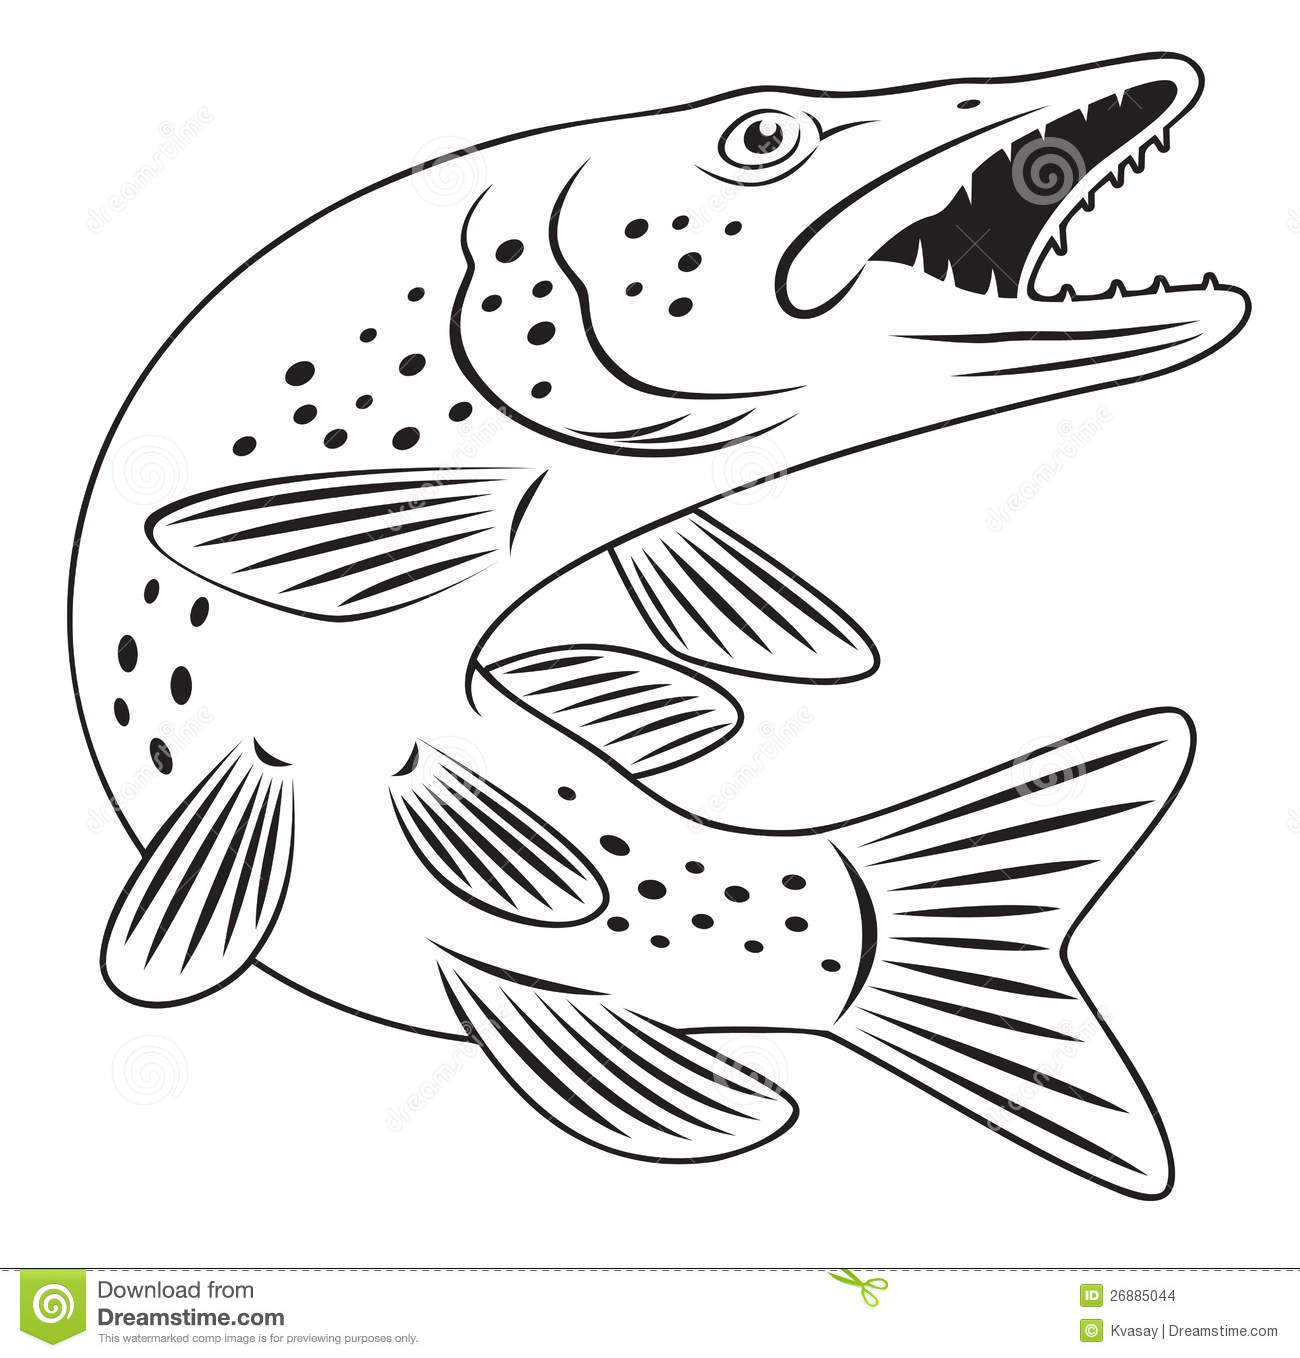 Northern Pike clipart #20, Download drawings